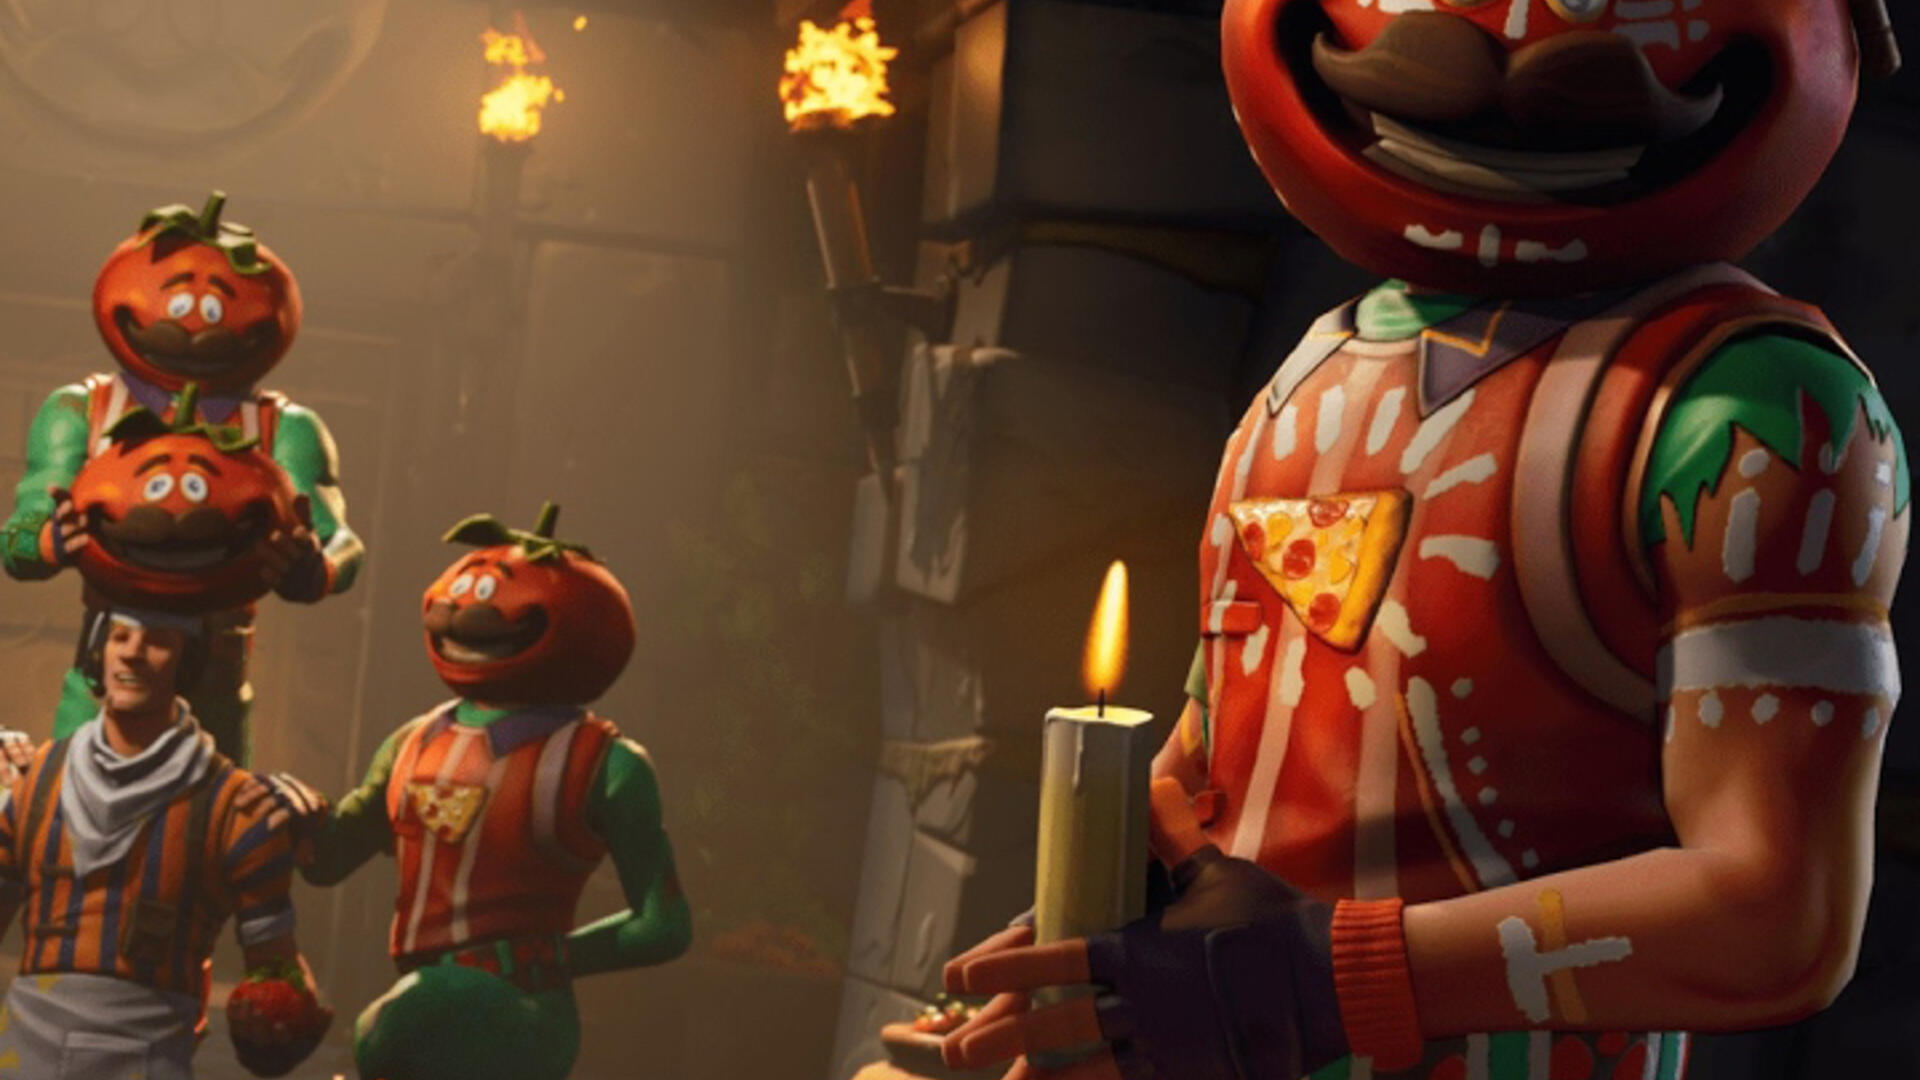 Fortnite Week 3 Challenges - How to Complete All Season 8, Week 3 Battle Pass Challenges